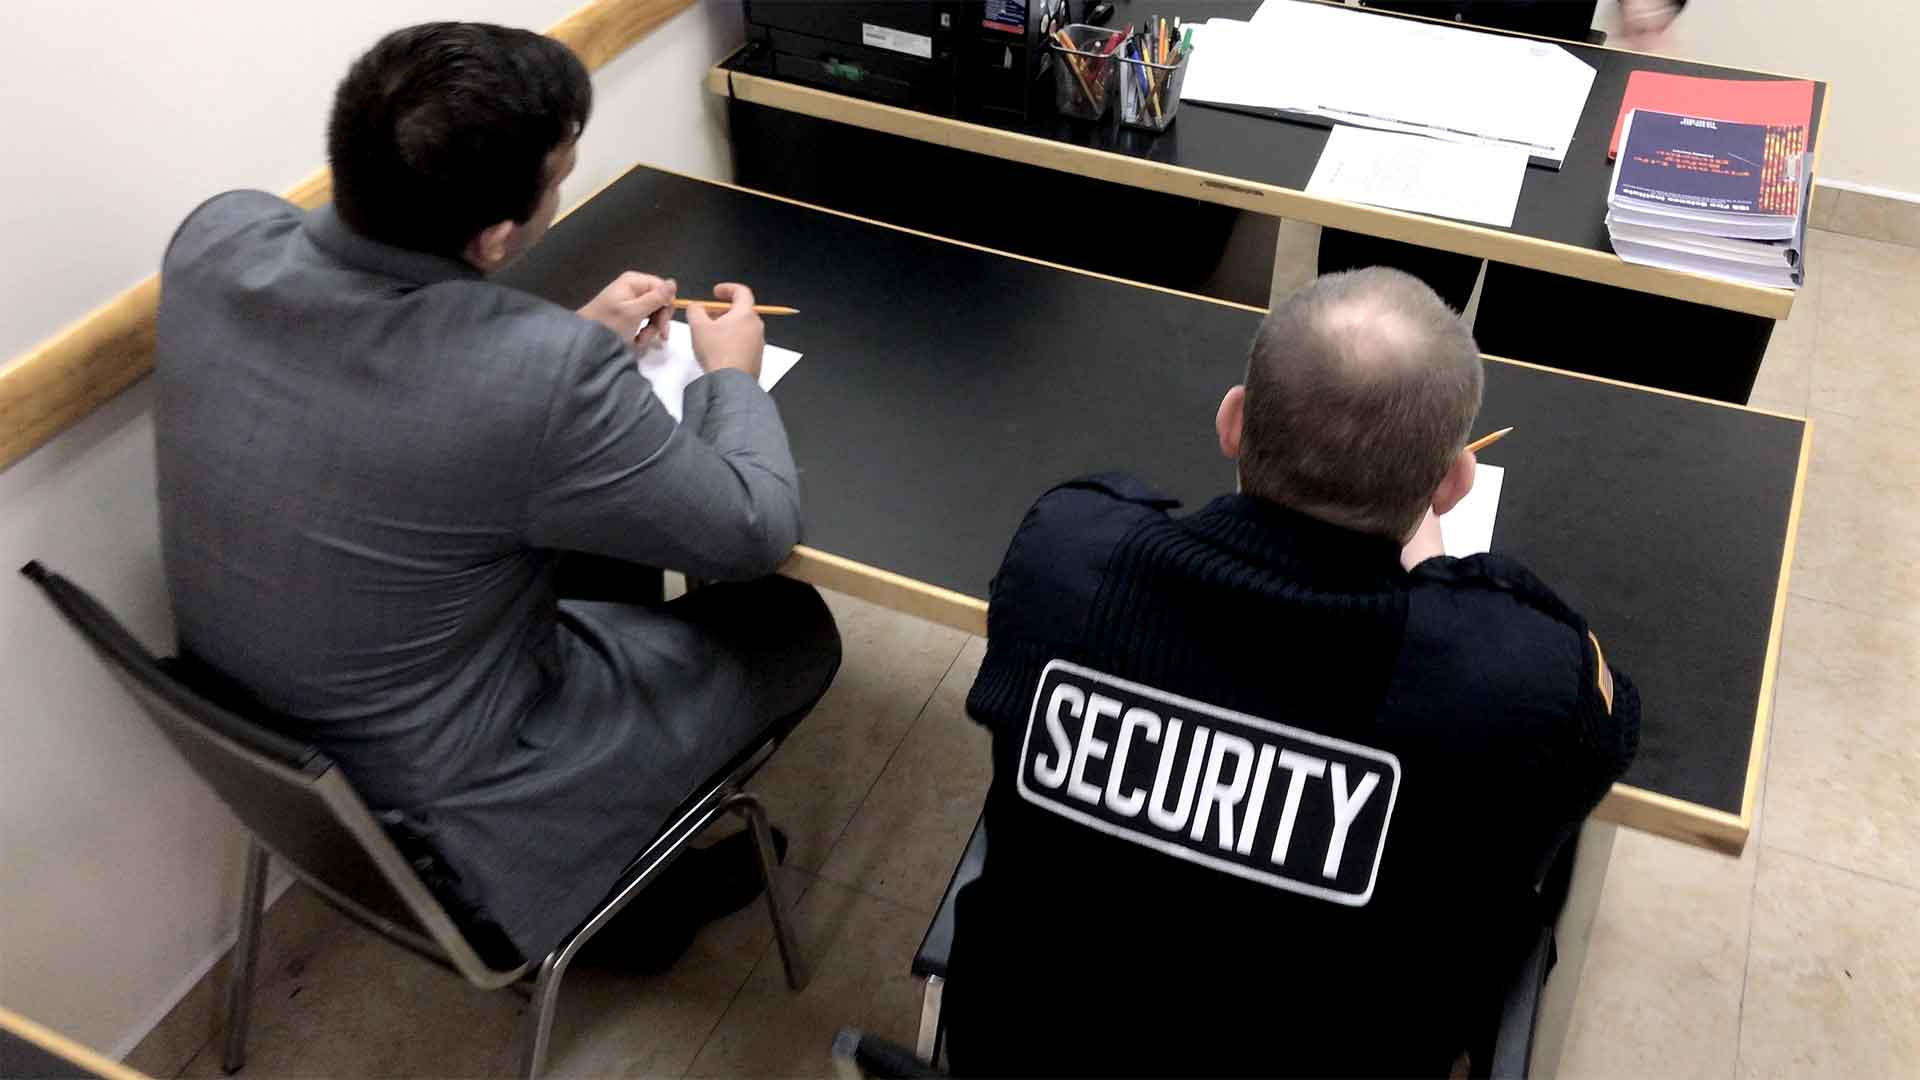 Security guard training class in Brooklyn's training center